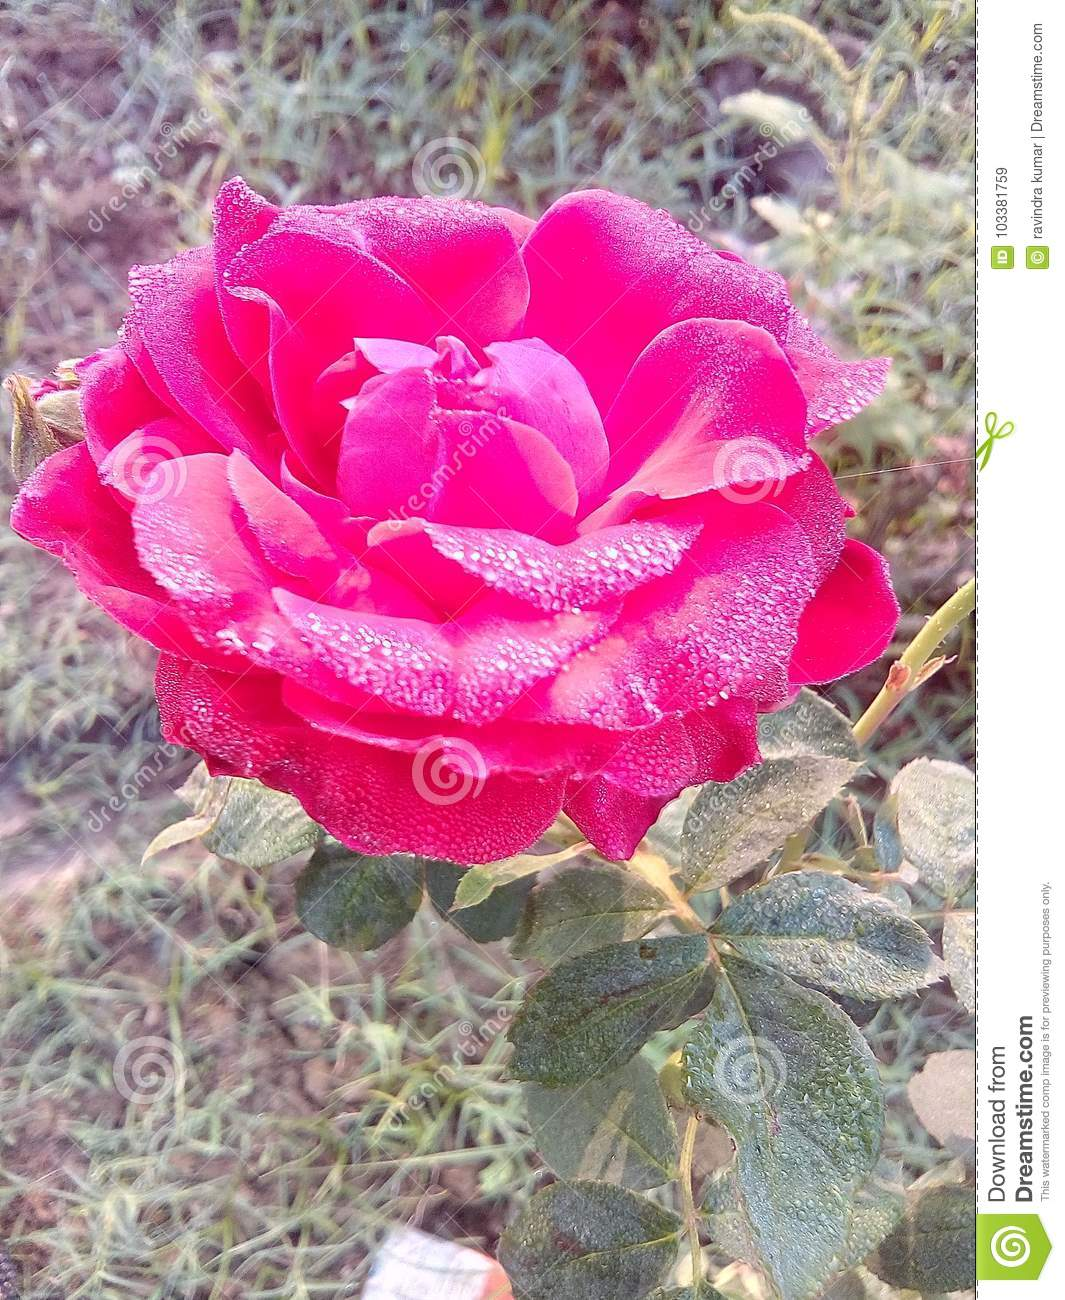 Rose flowers very good beautiful nice romantic love lovely colors royalty free stock photo download rose flowers very good izmirmasajfo